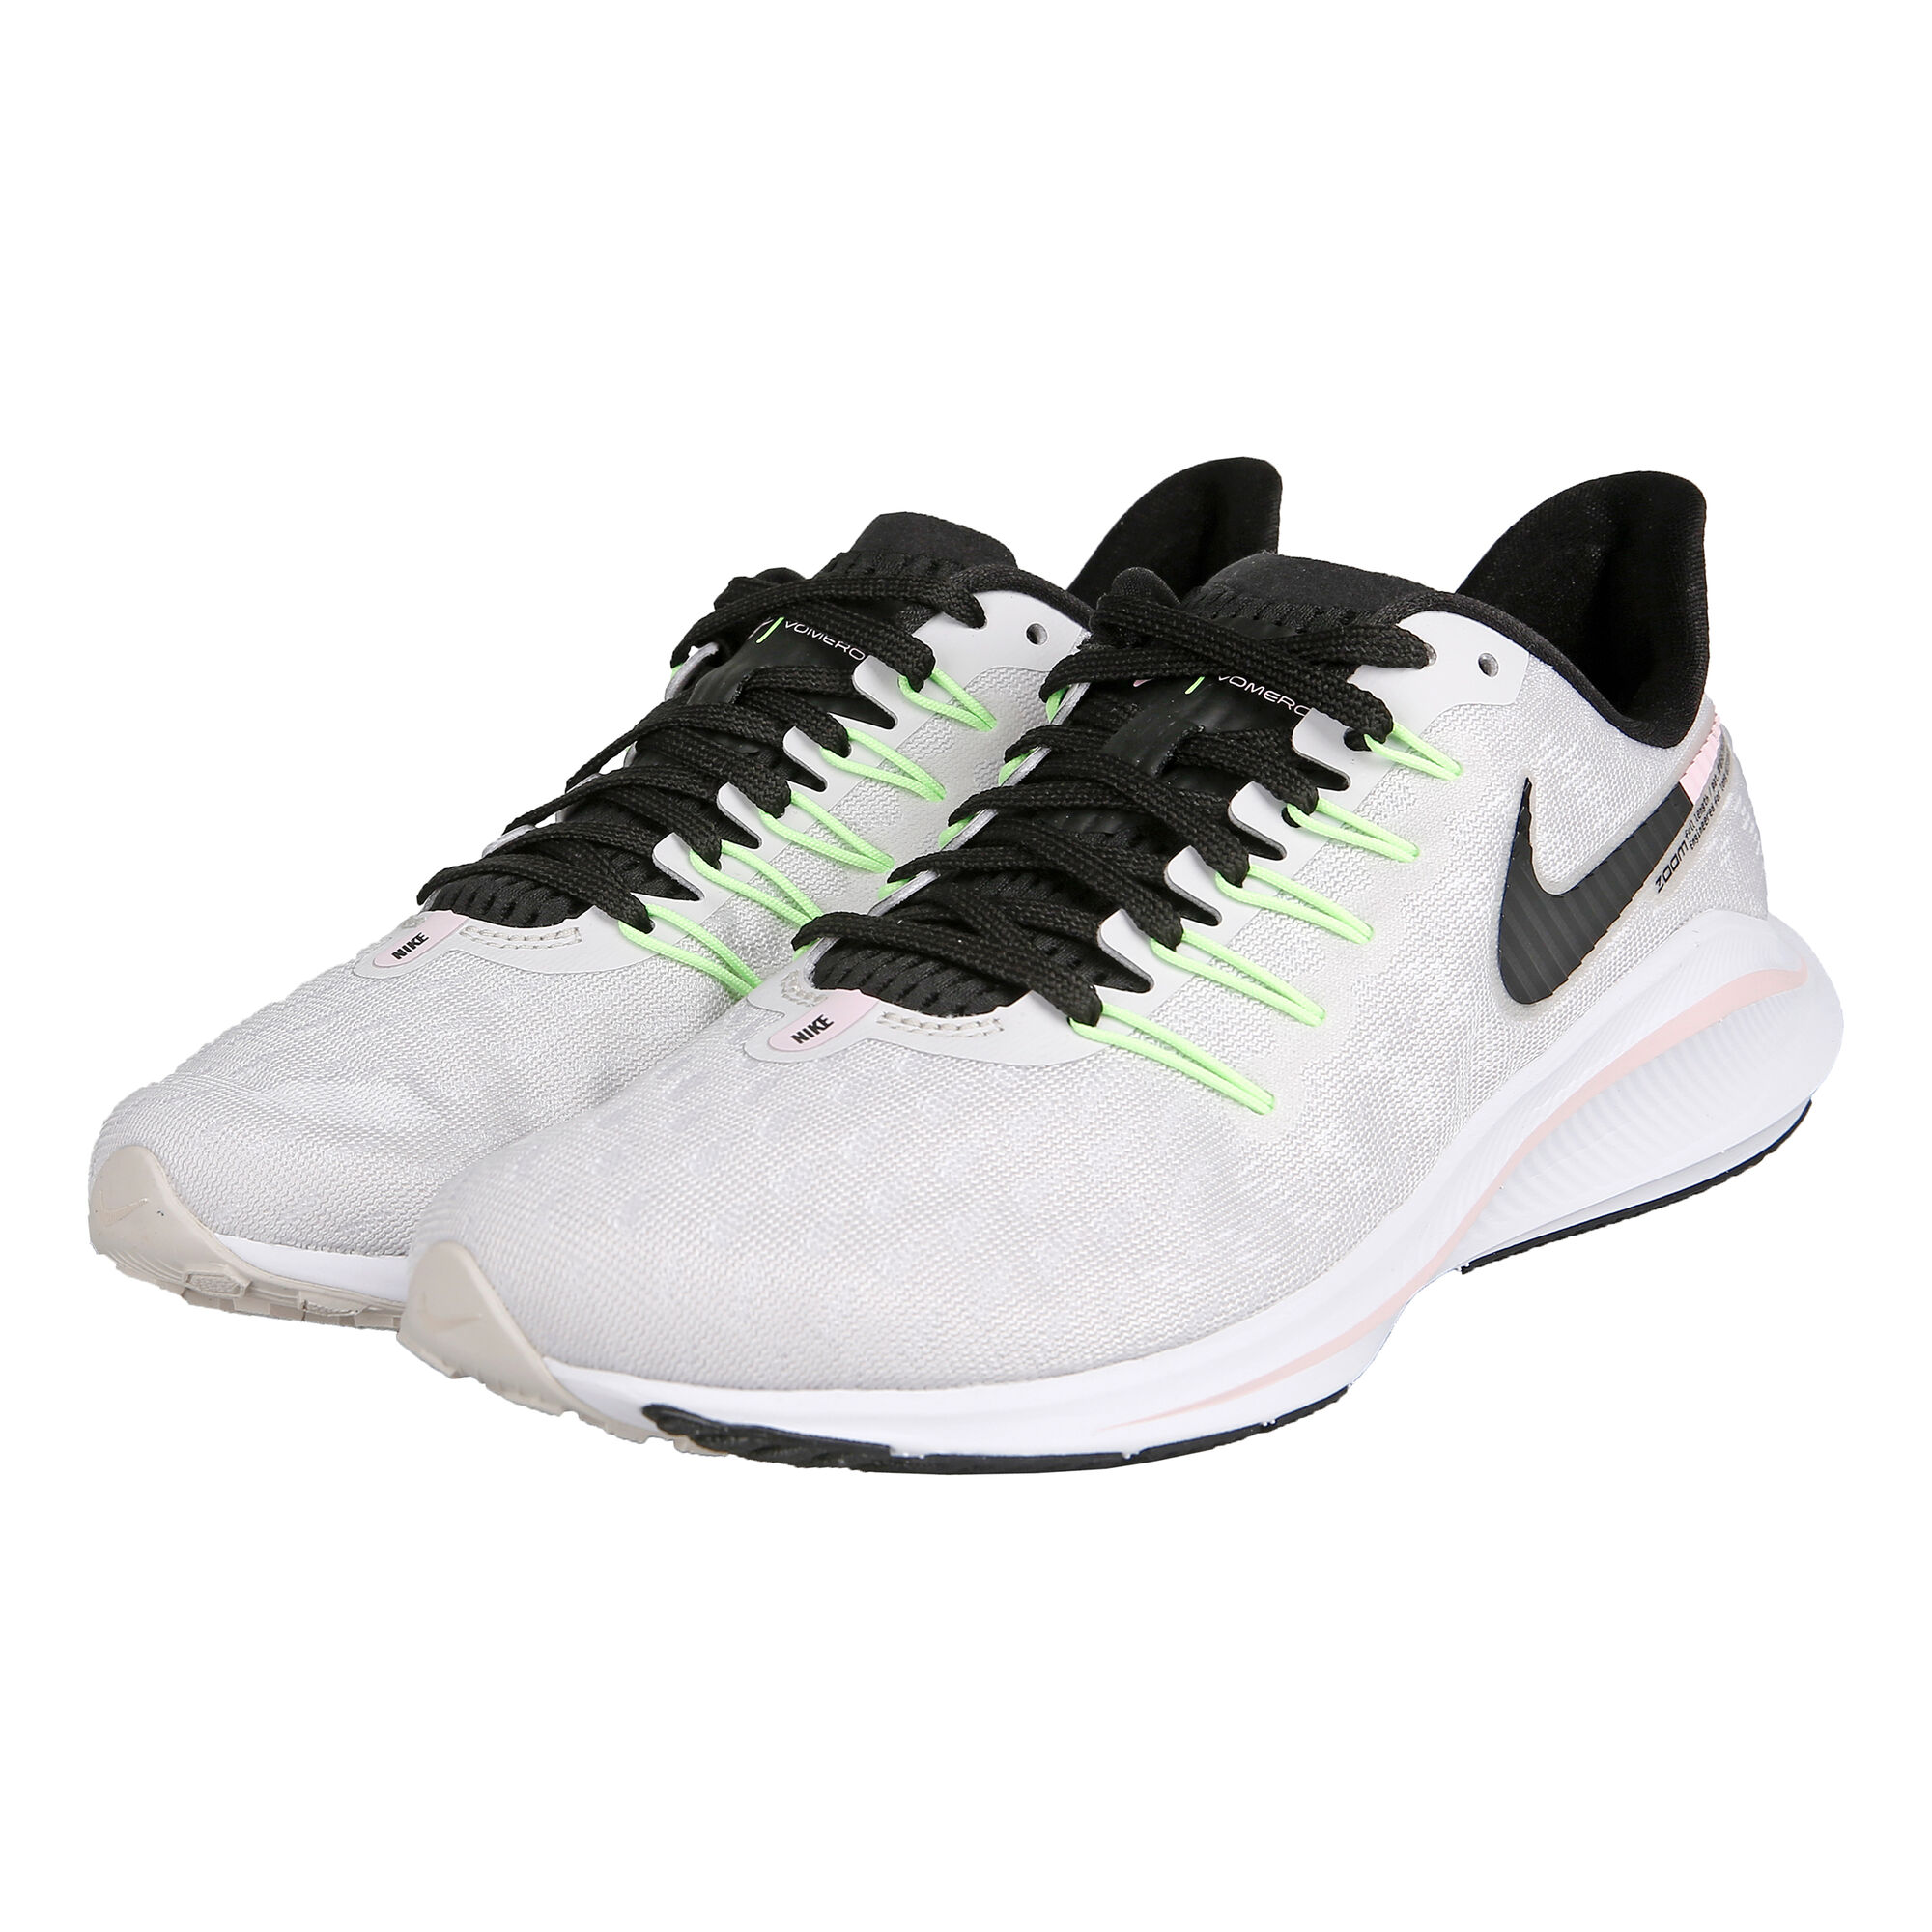 da61ea603551 buy Nike Air Zoom Vomero 14 Neutral Running Shoe Women - Lightgrey ...